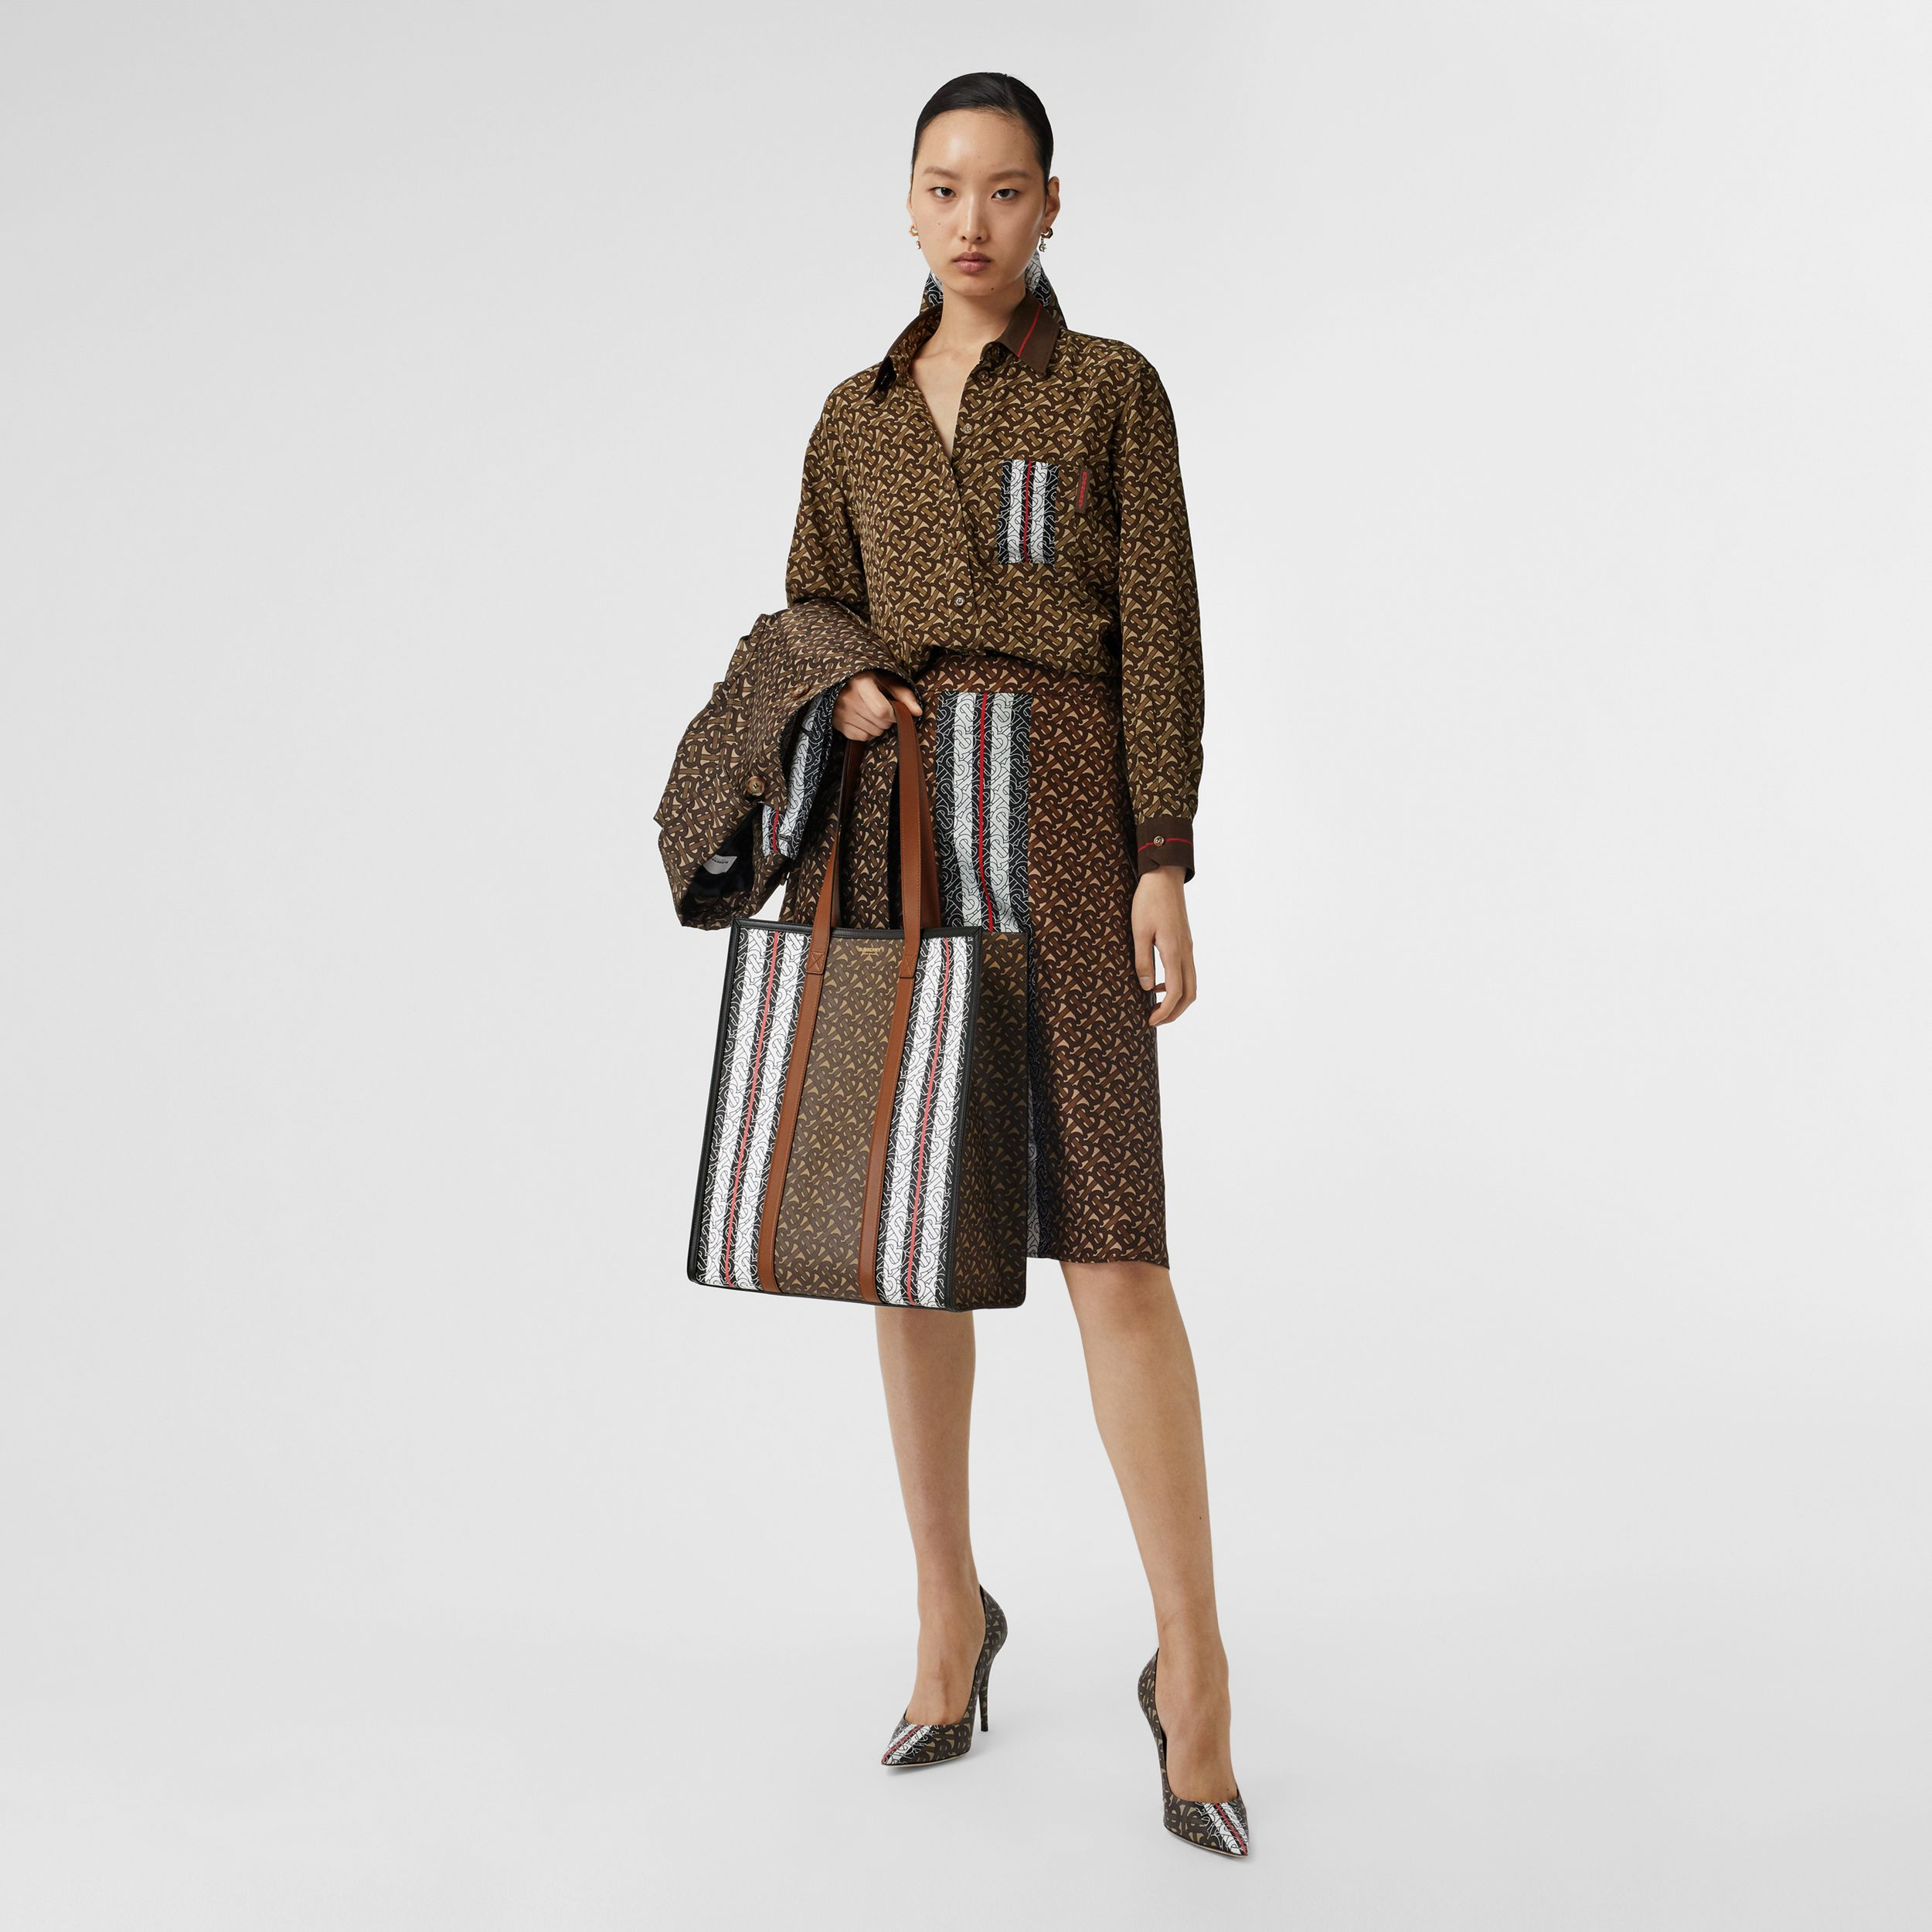 Monogram Stripe Print Silk Oversized Shirt in Bridle Brown - Women | Burberry United Kingdom - 1